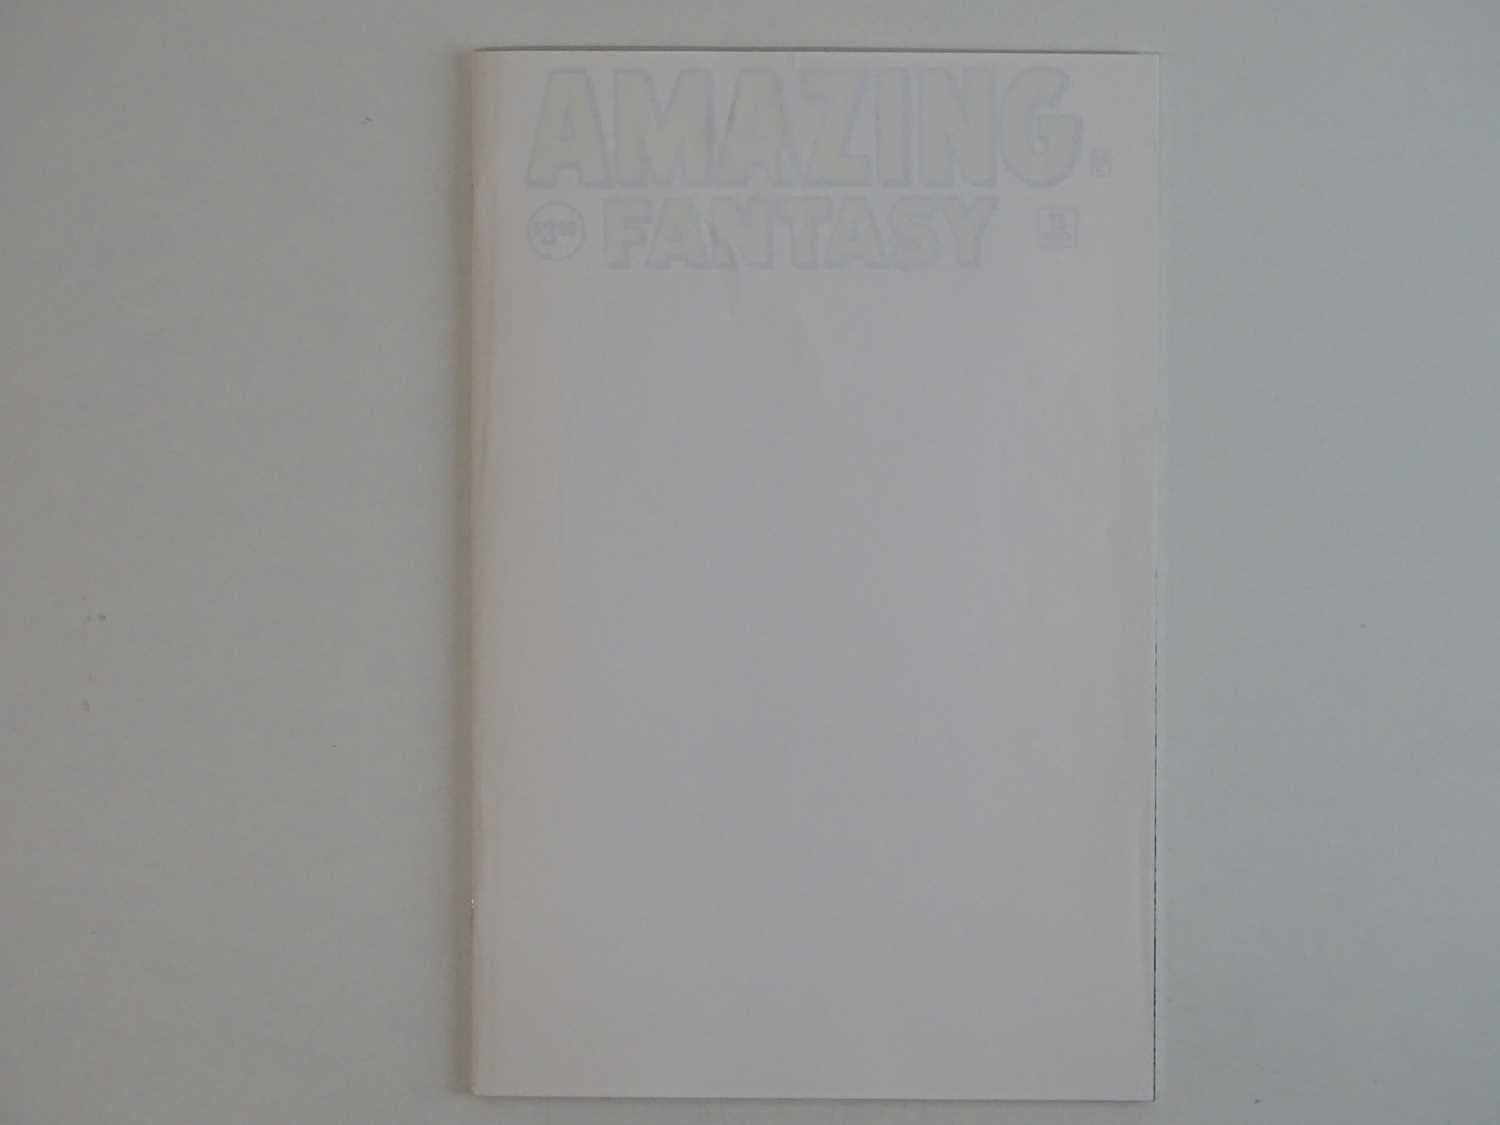 AMAZING FANTASY #15 - (1968 - MARVEL) - Facsimile Edition + White Cover with cover protector